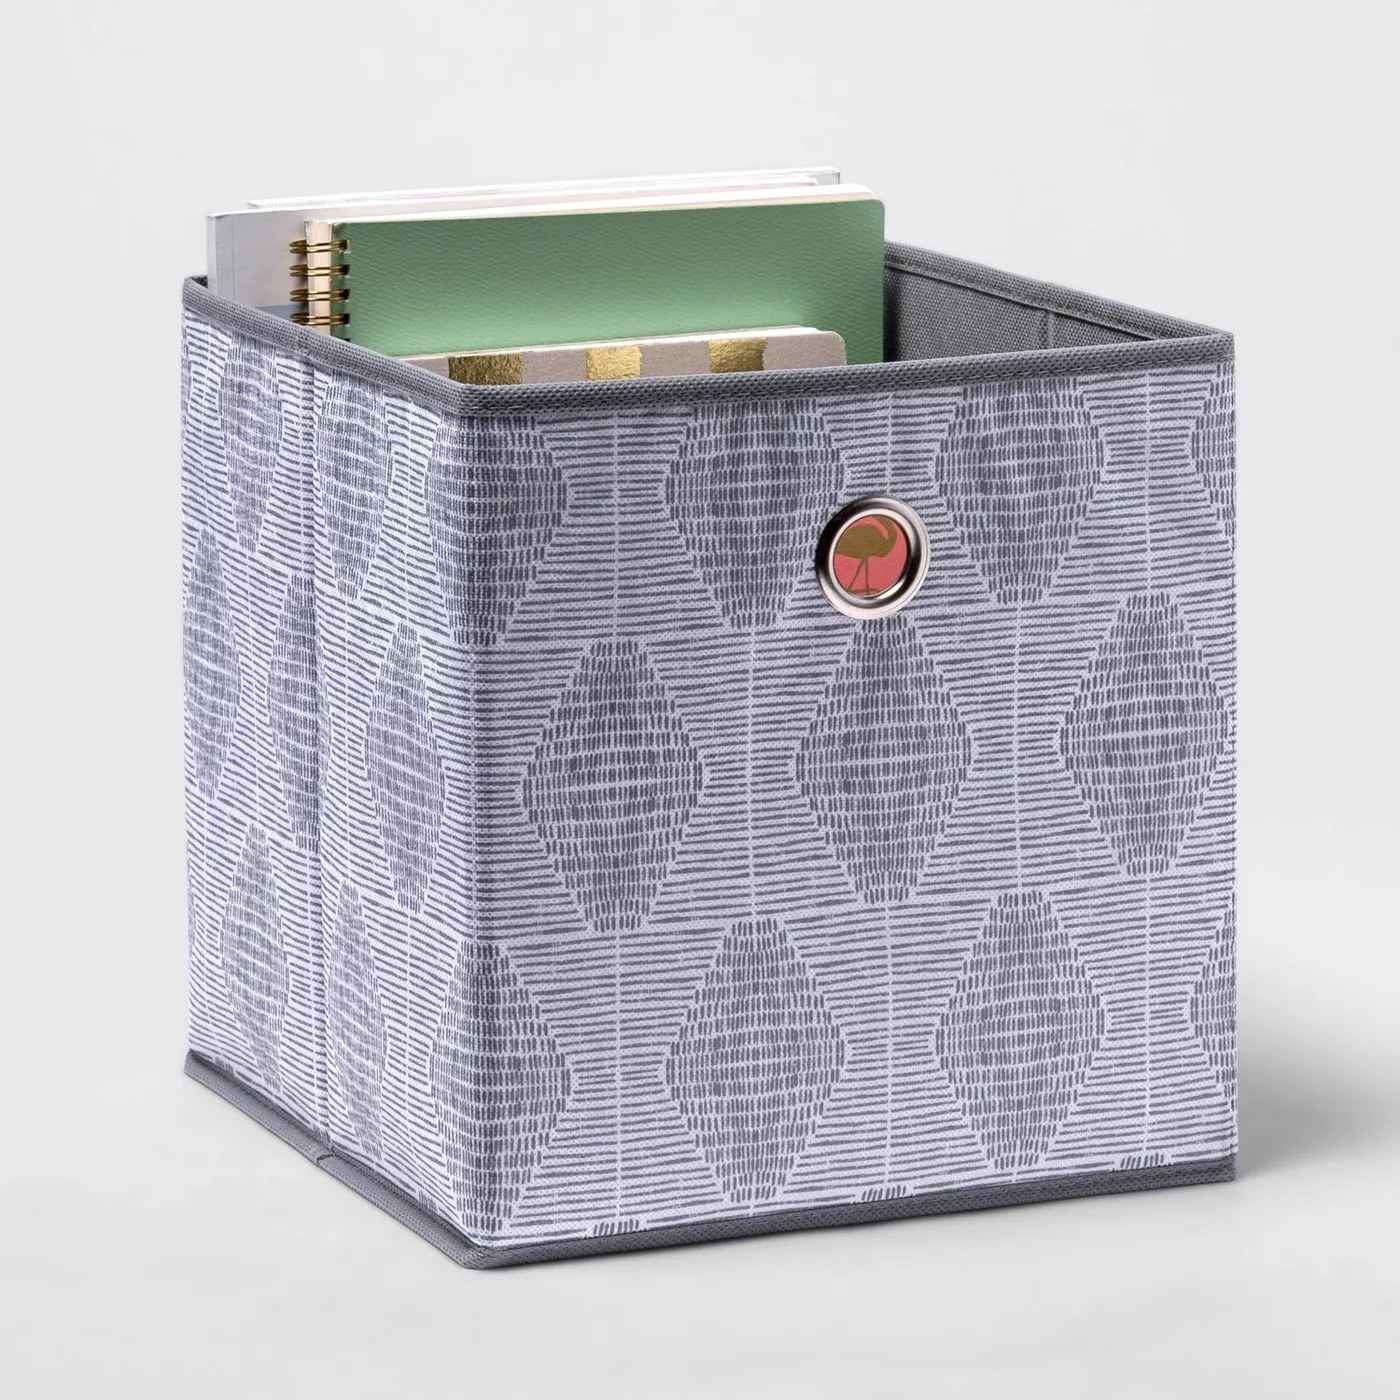 Storage cube with assorted items inside